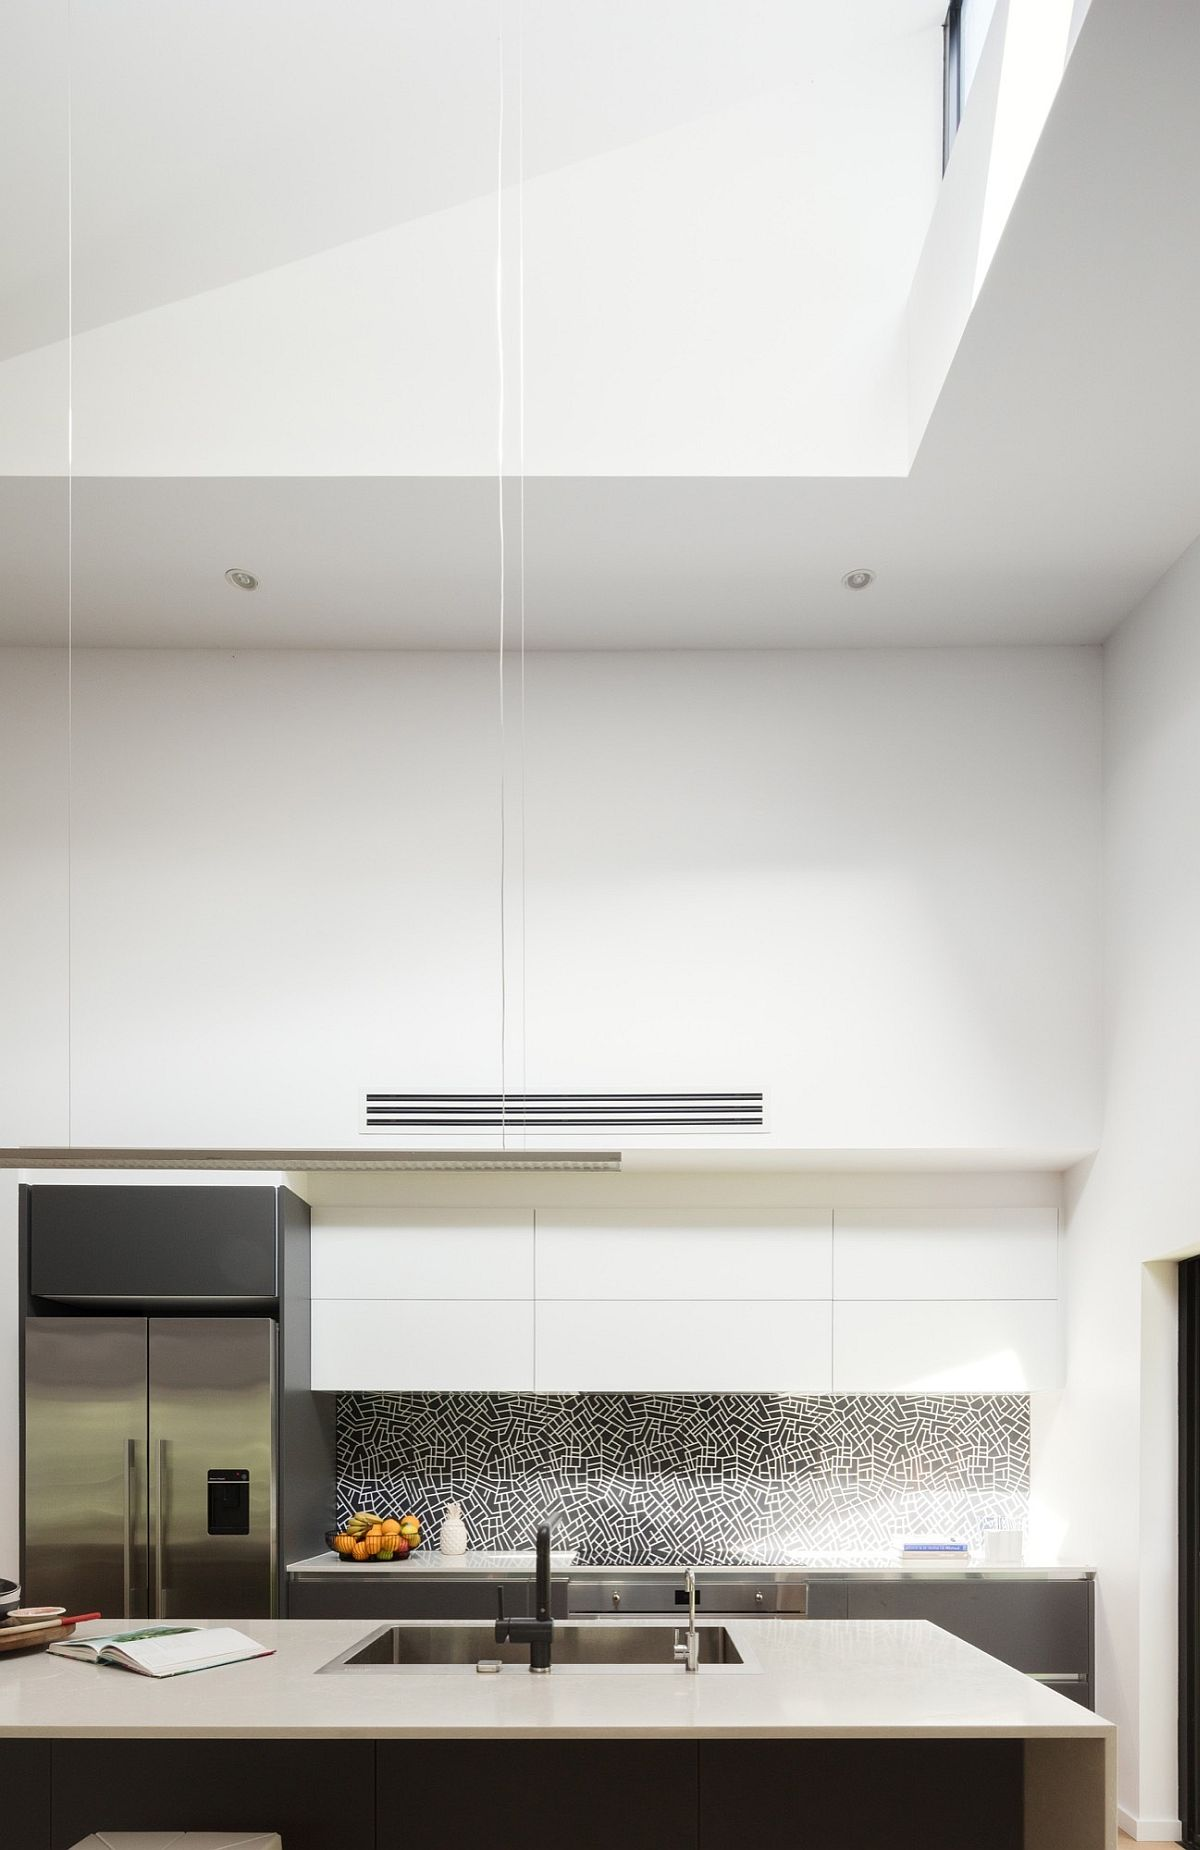 Kitchen in white with ample natural ventilation